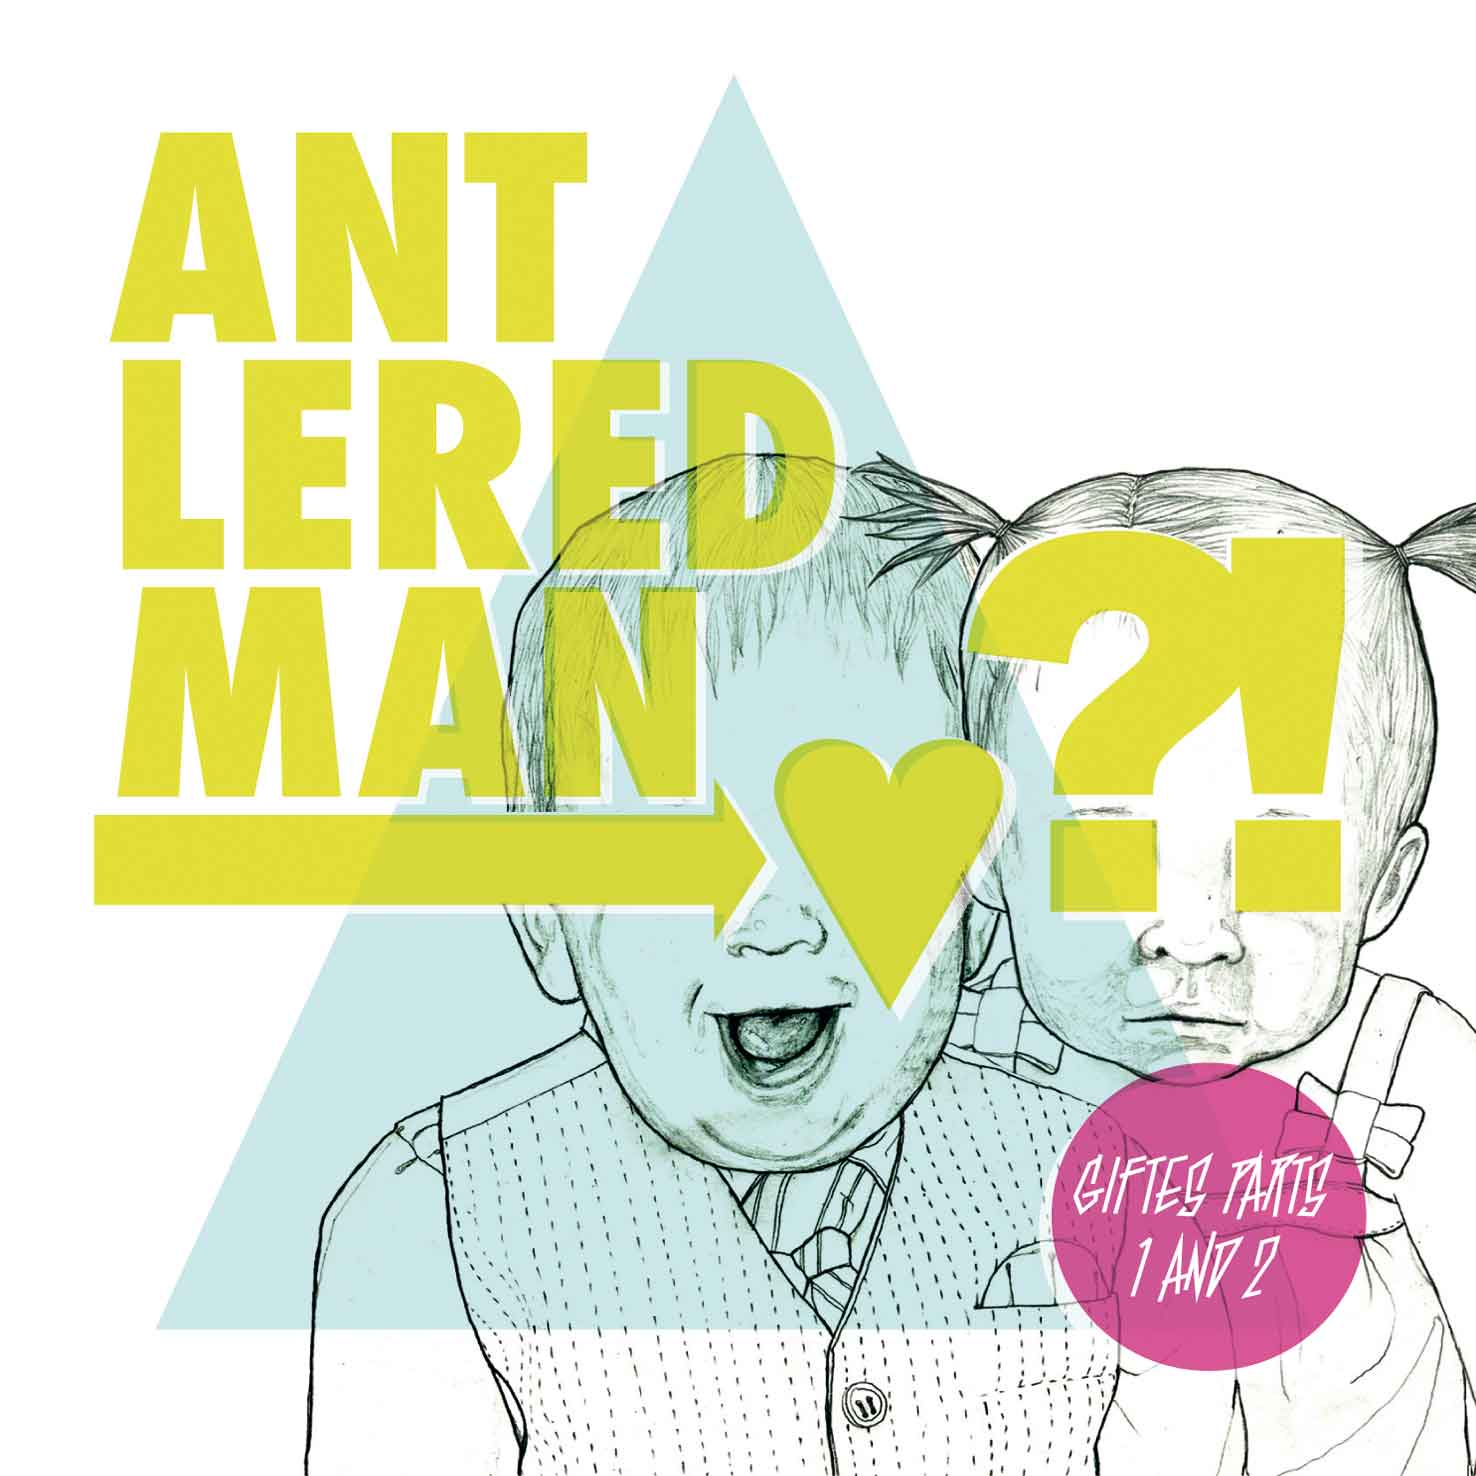 ATNLERED MAN, Cover, Giftes Part 1 & 2, Noisolution